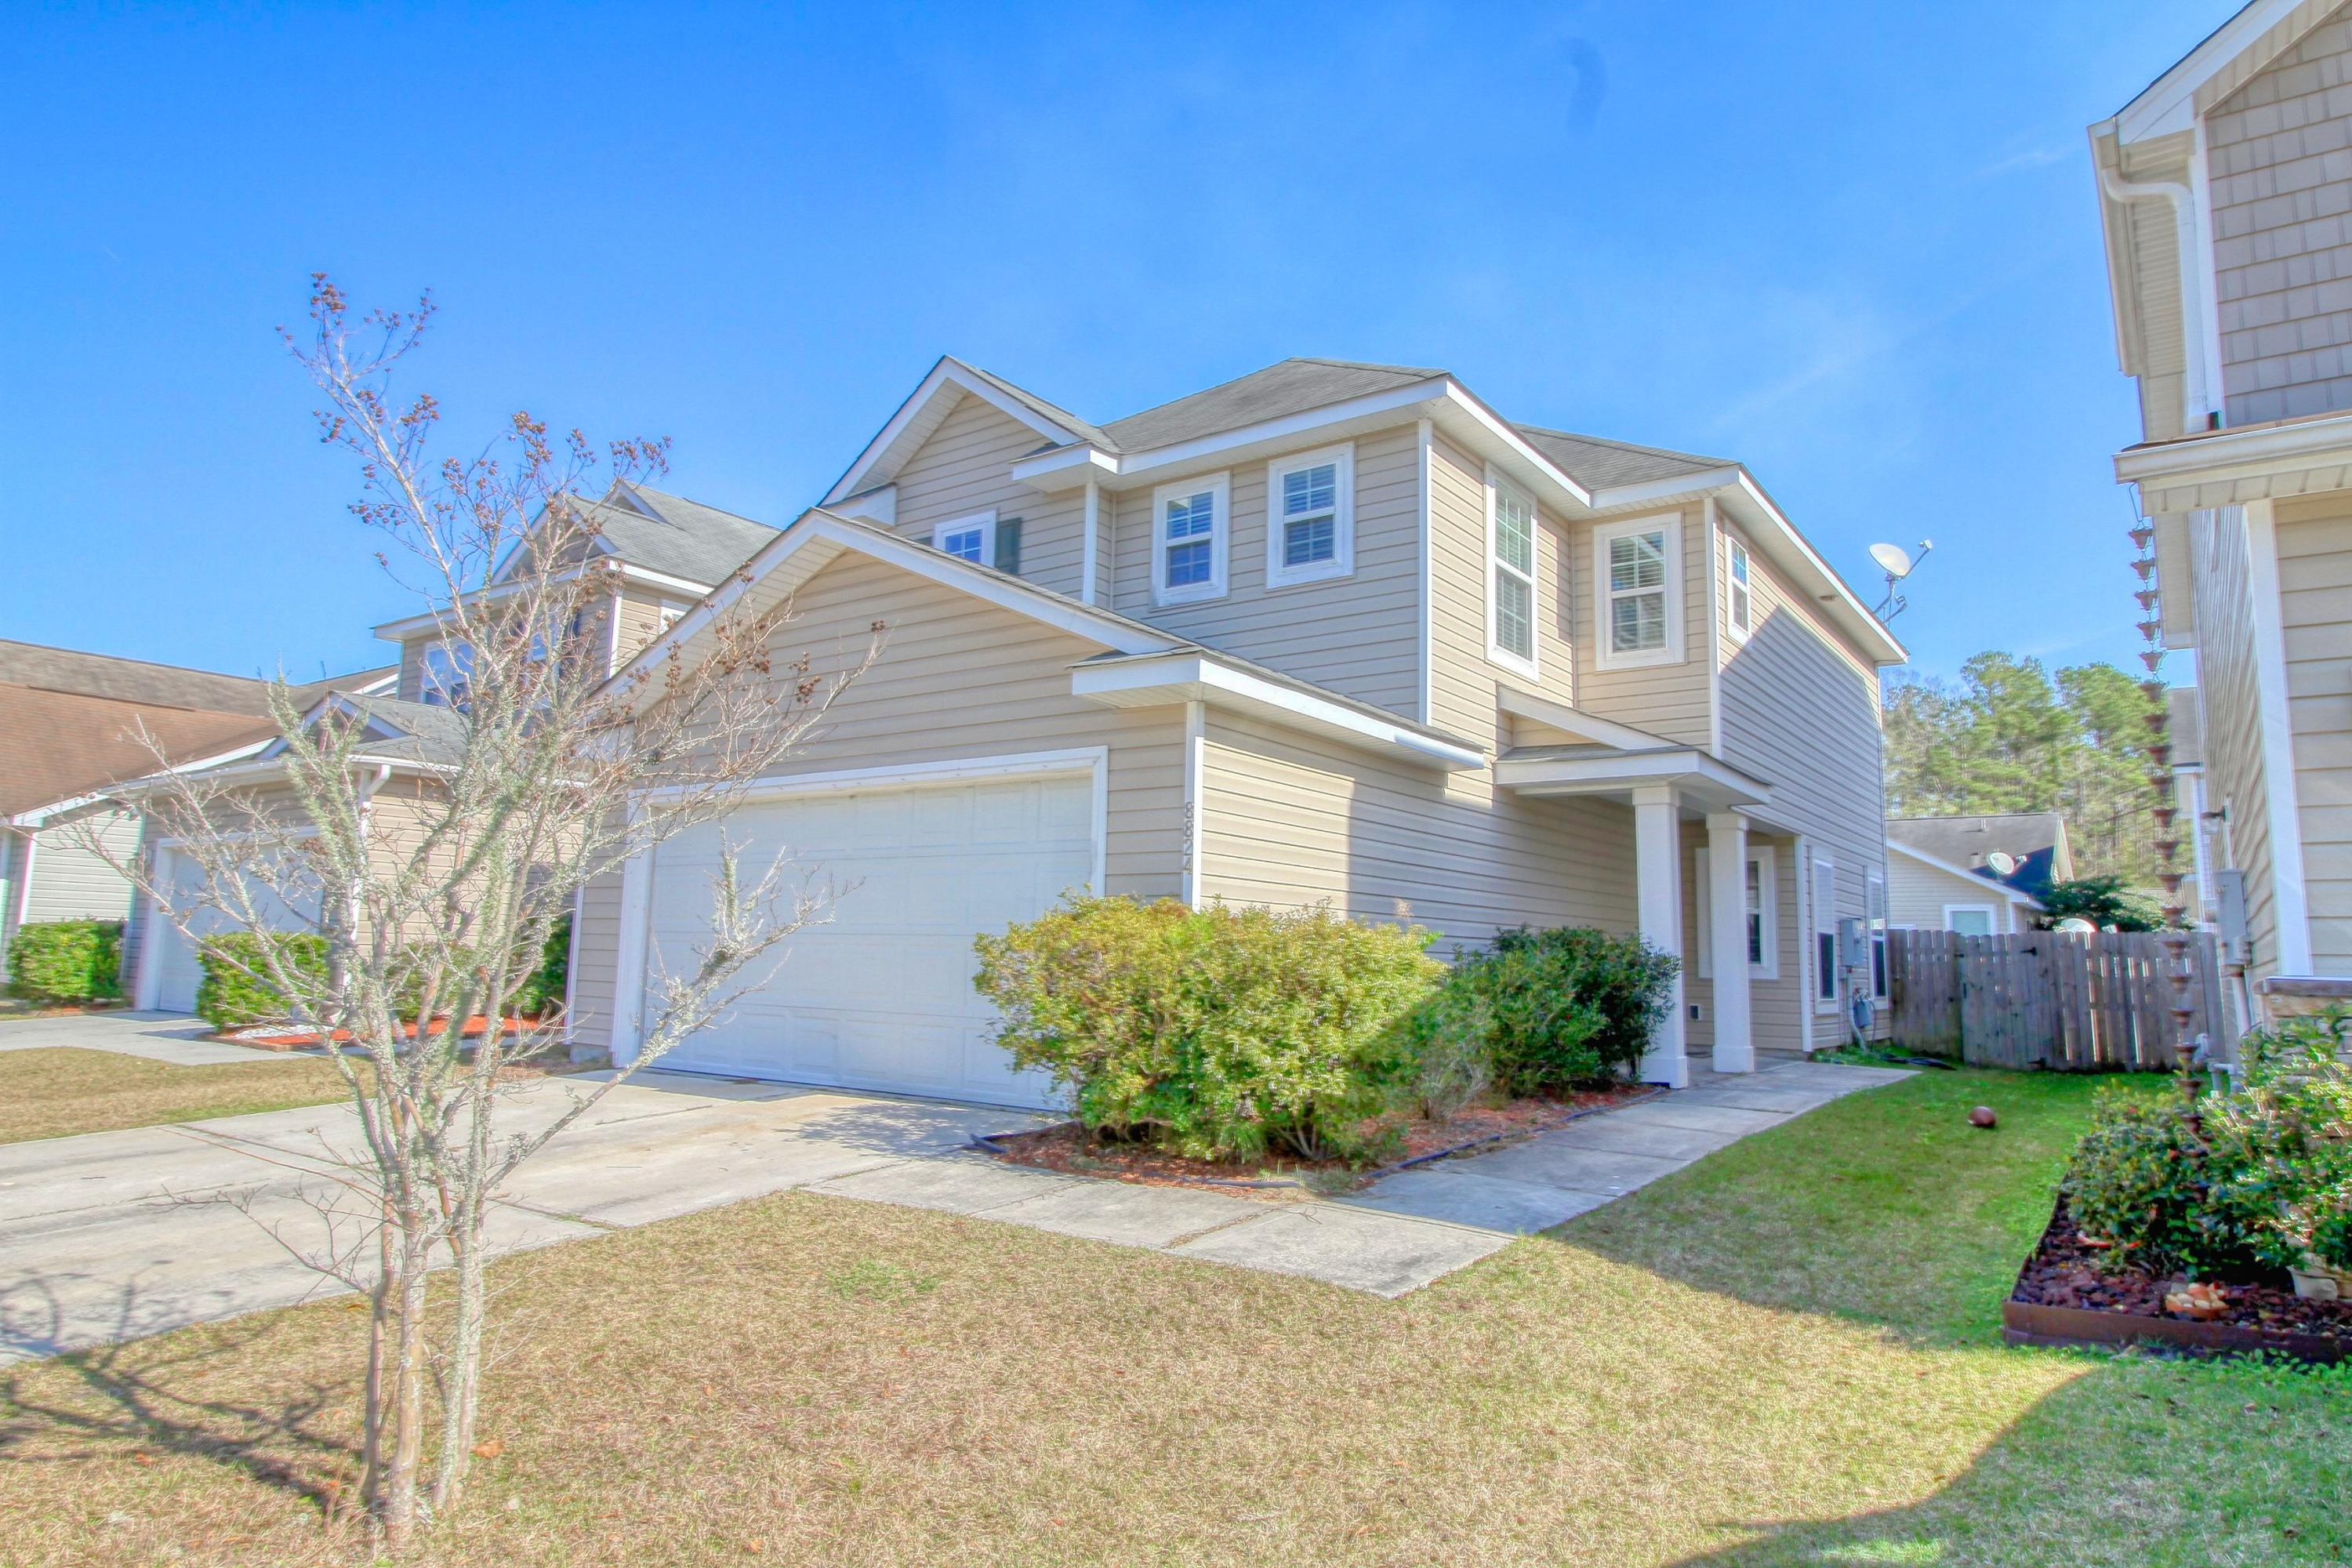 8824 Kellum Drive North Charleston, Sc 29420